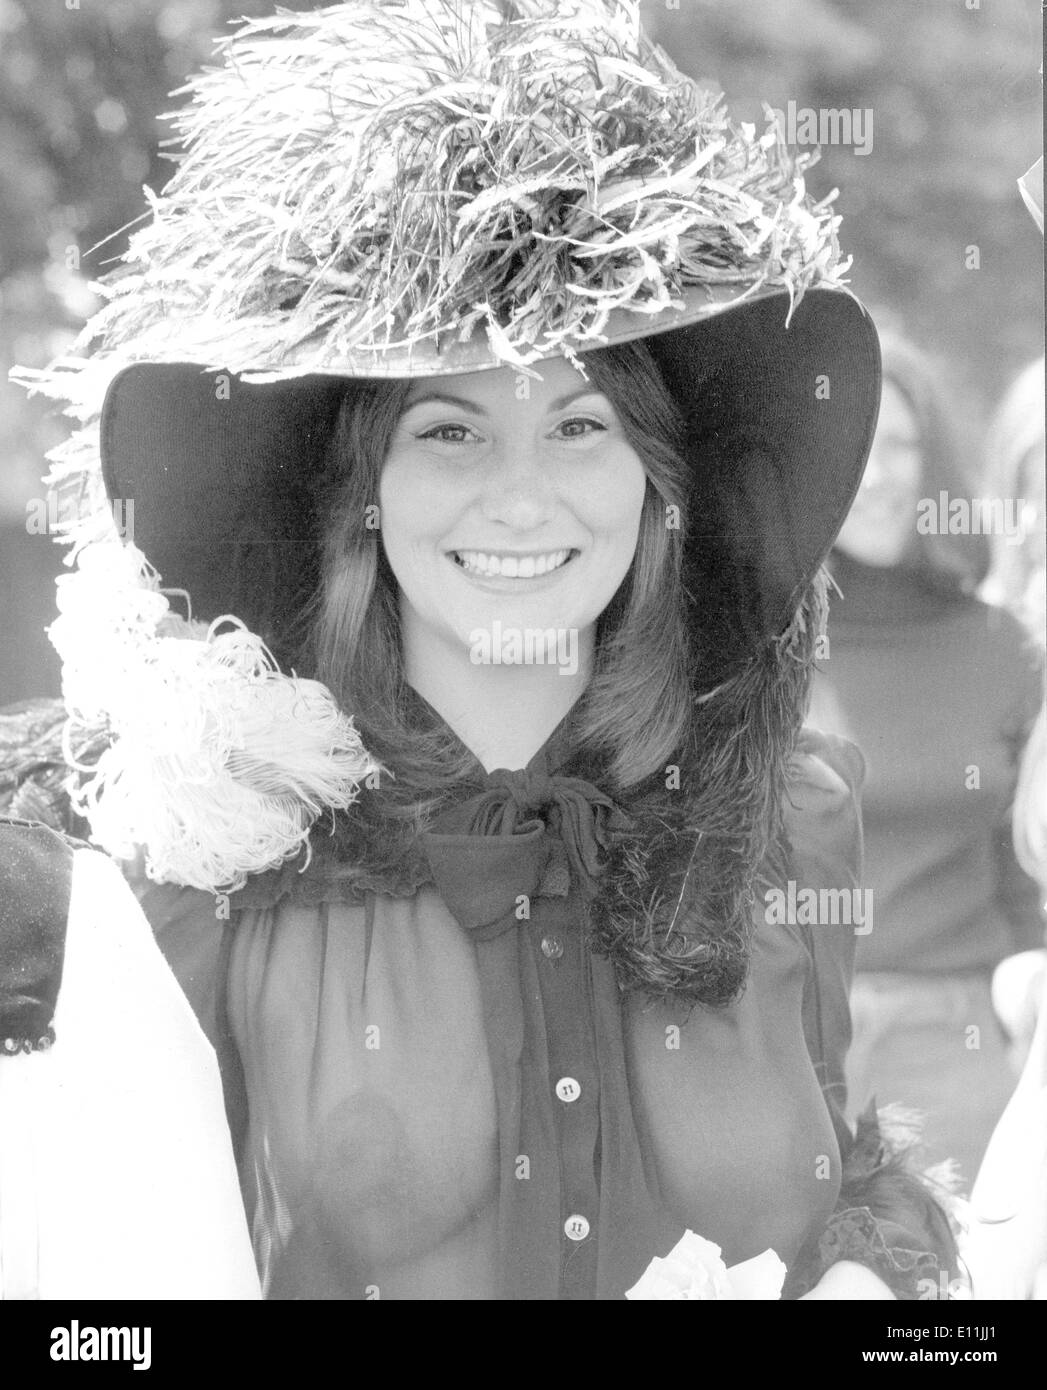 actress linda lovelace shock in royal ascot outfit stock photo